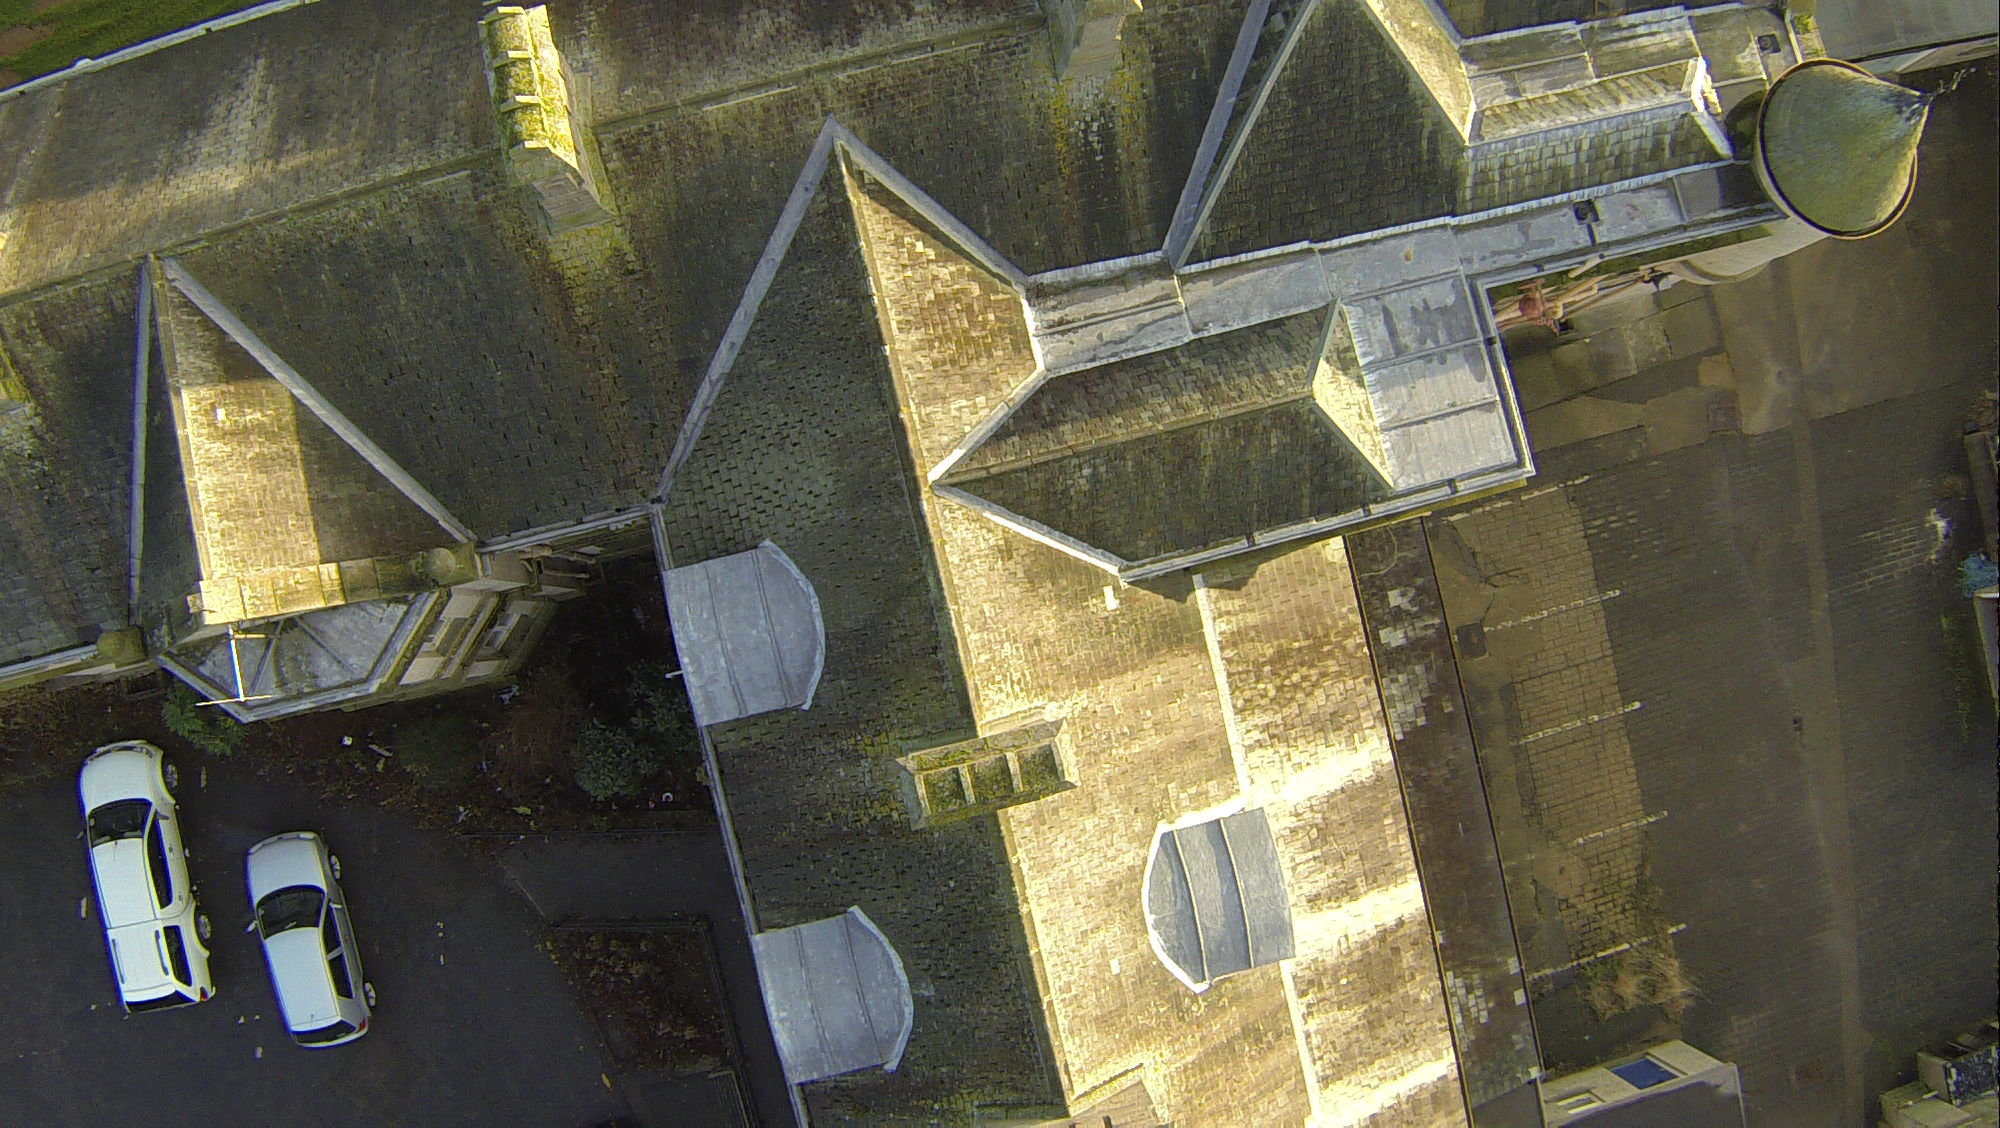 Roof inspection - Survey Drones